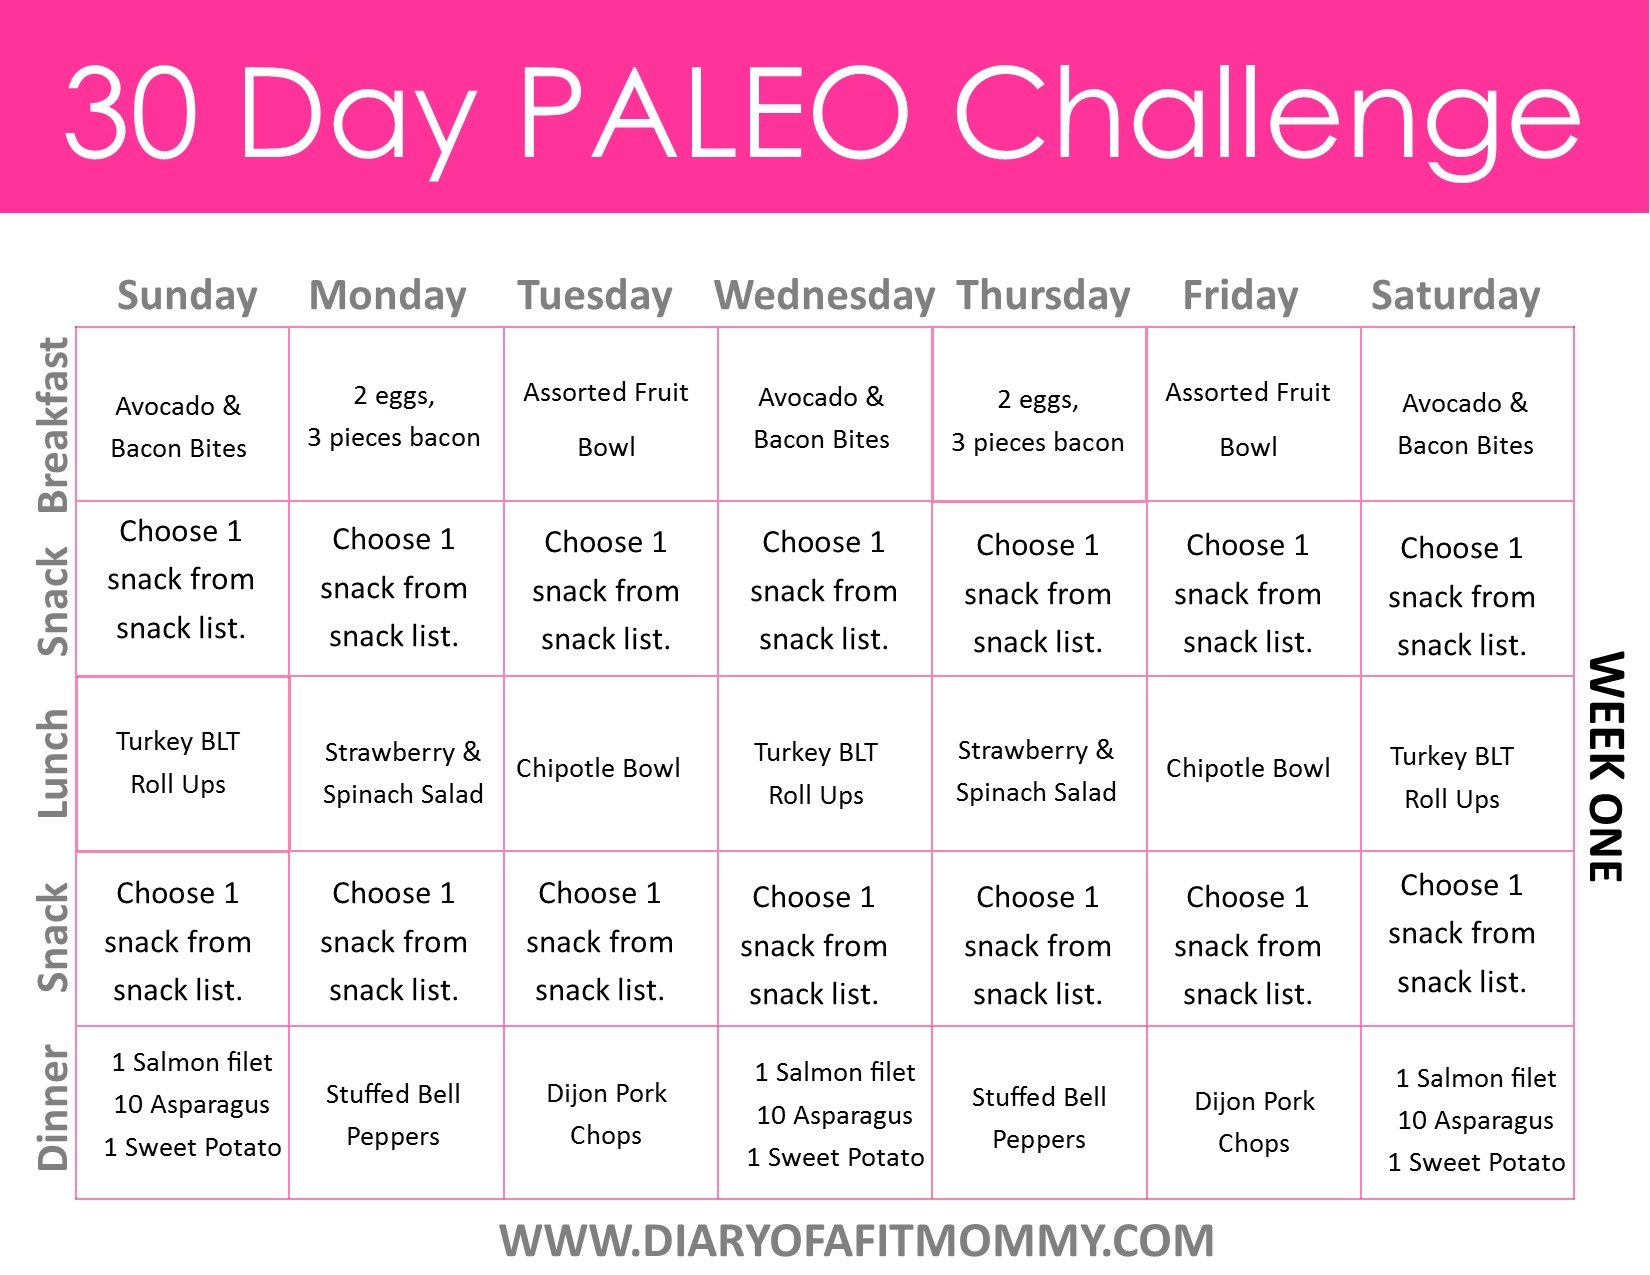 30 Day Paleo Challenge - Diary of a Fit Mommy